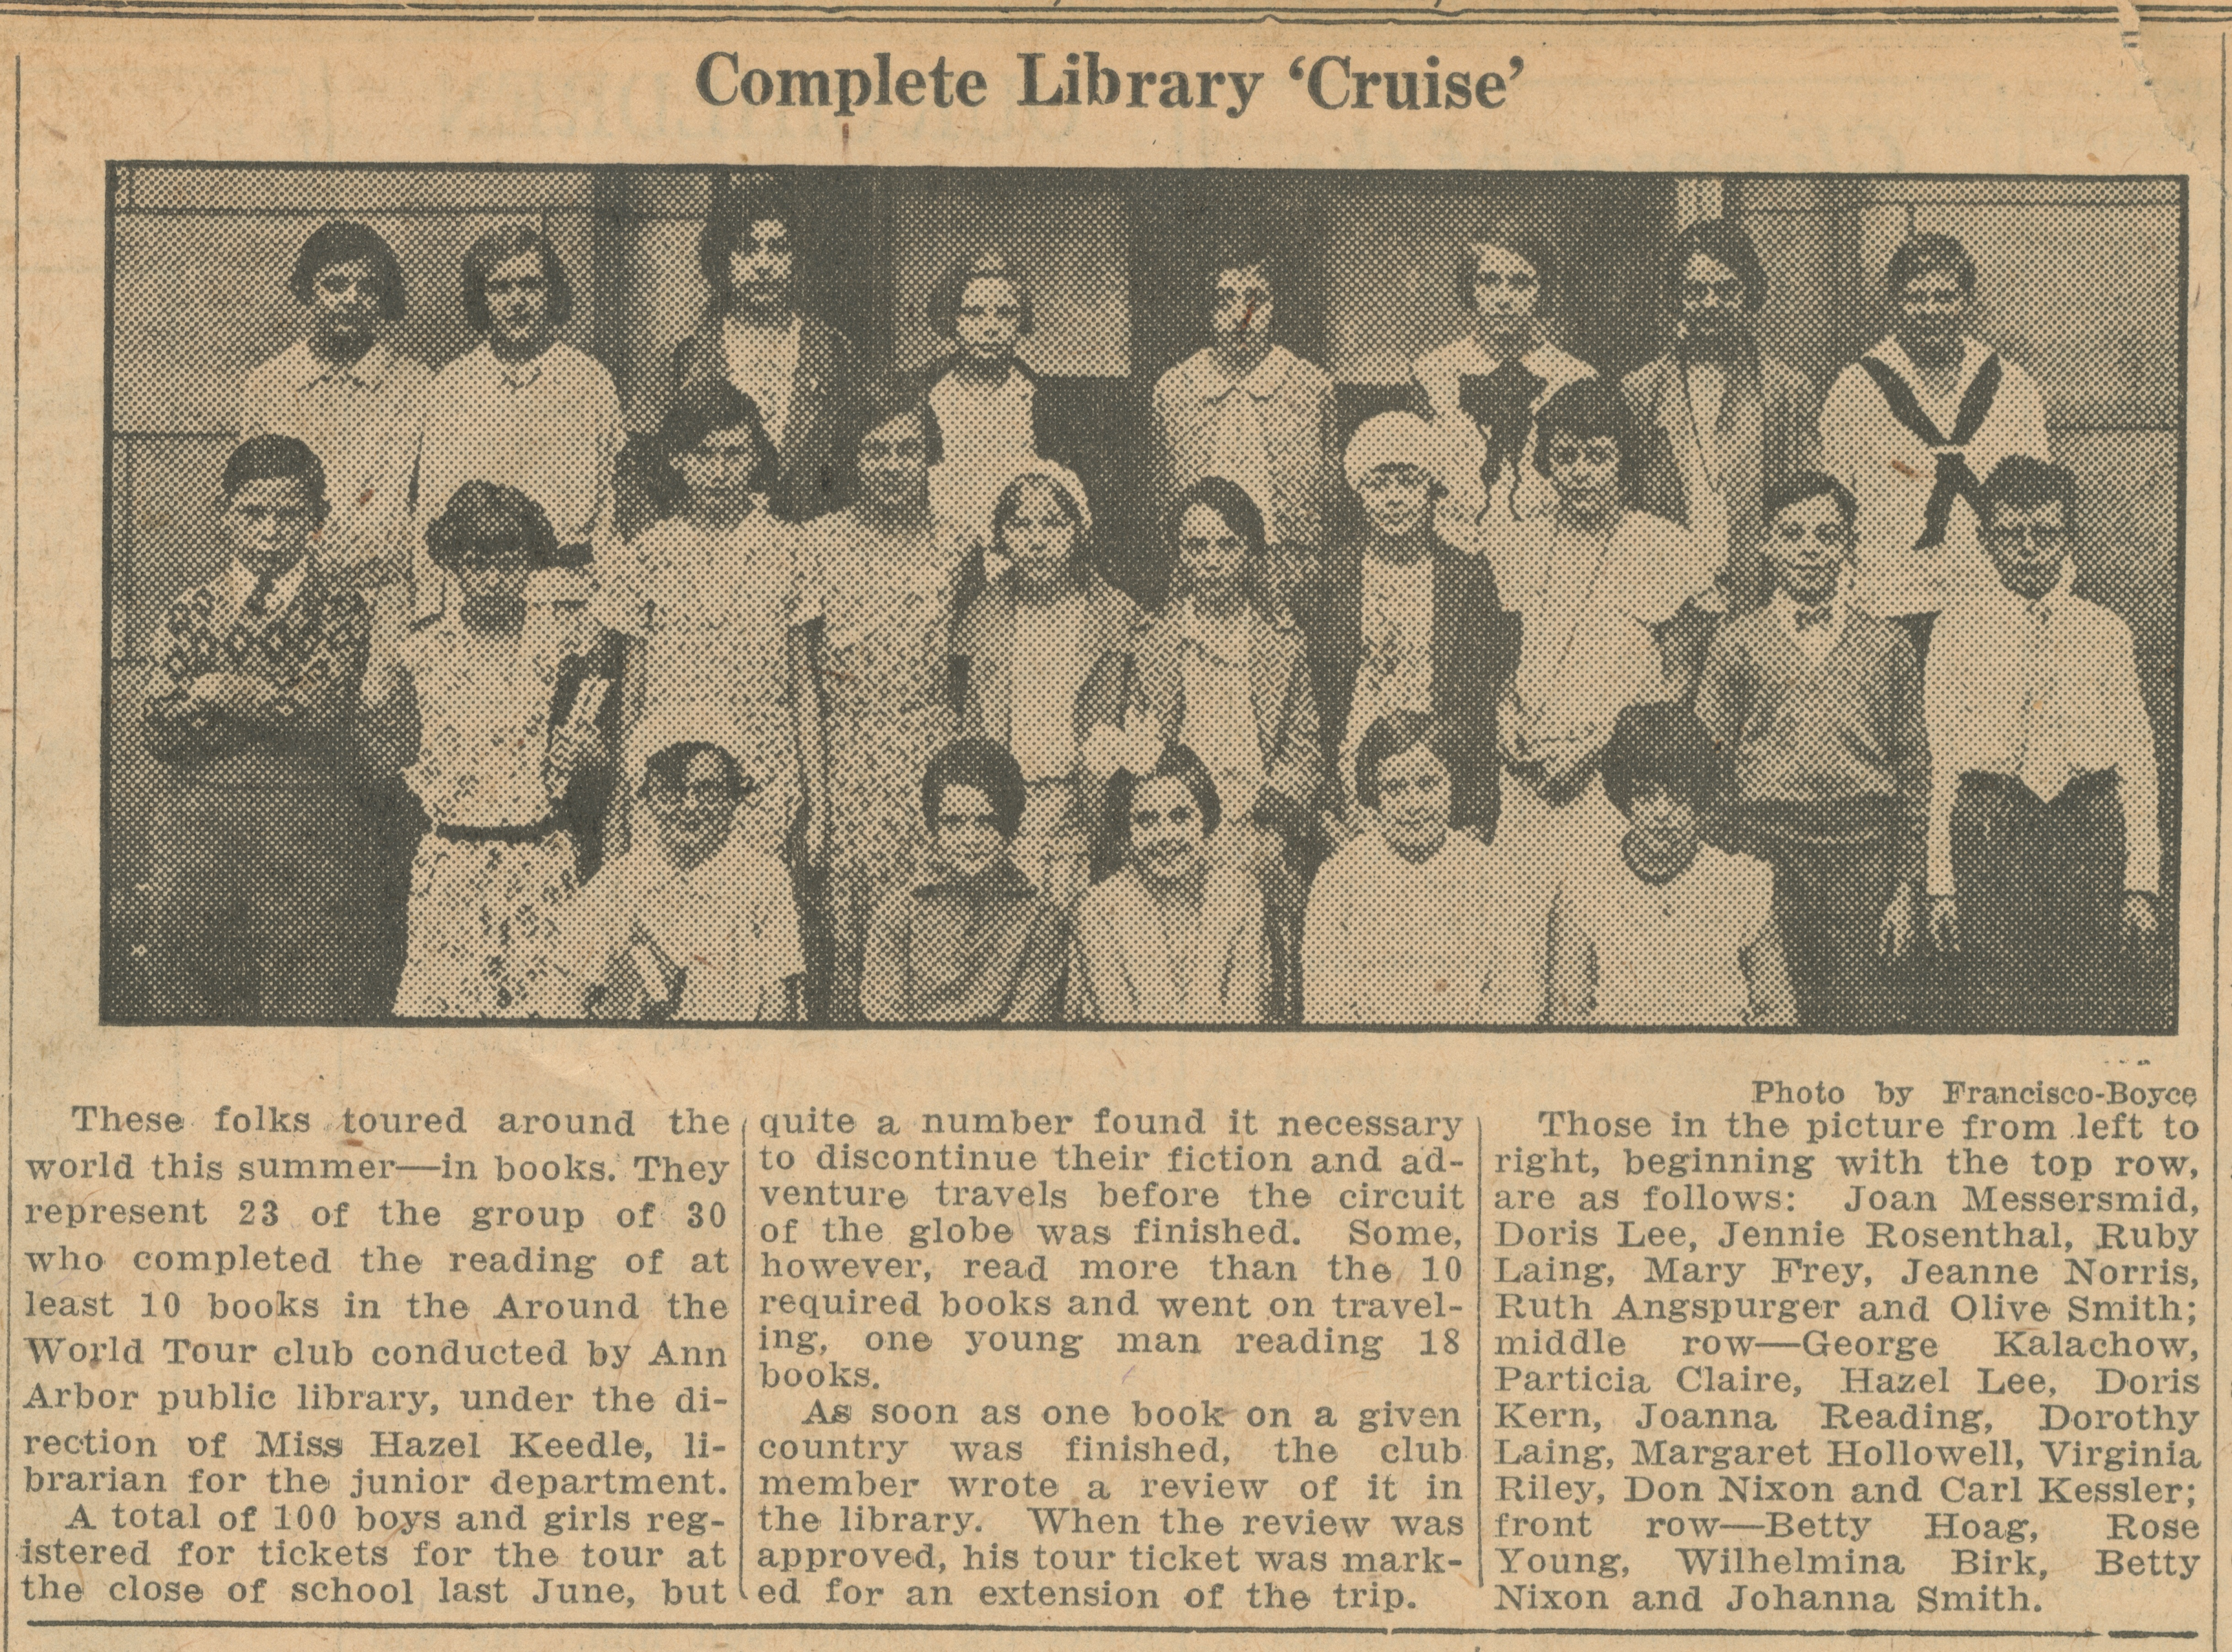 Complete Library 'Cruise' image